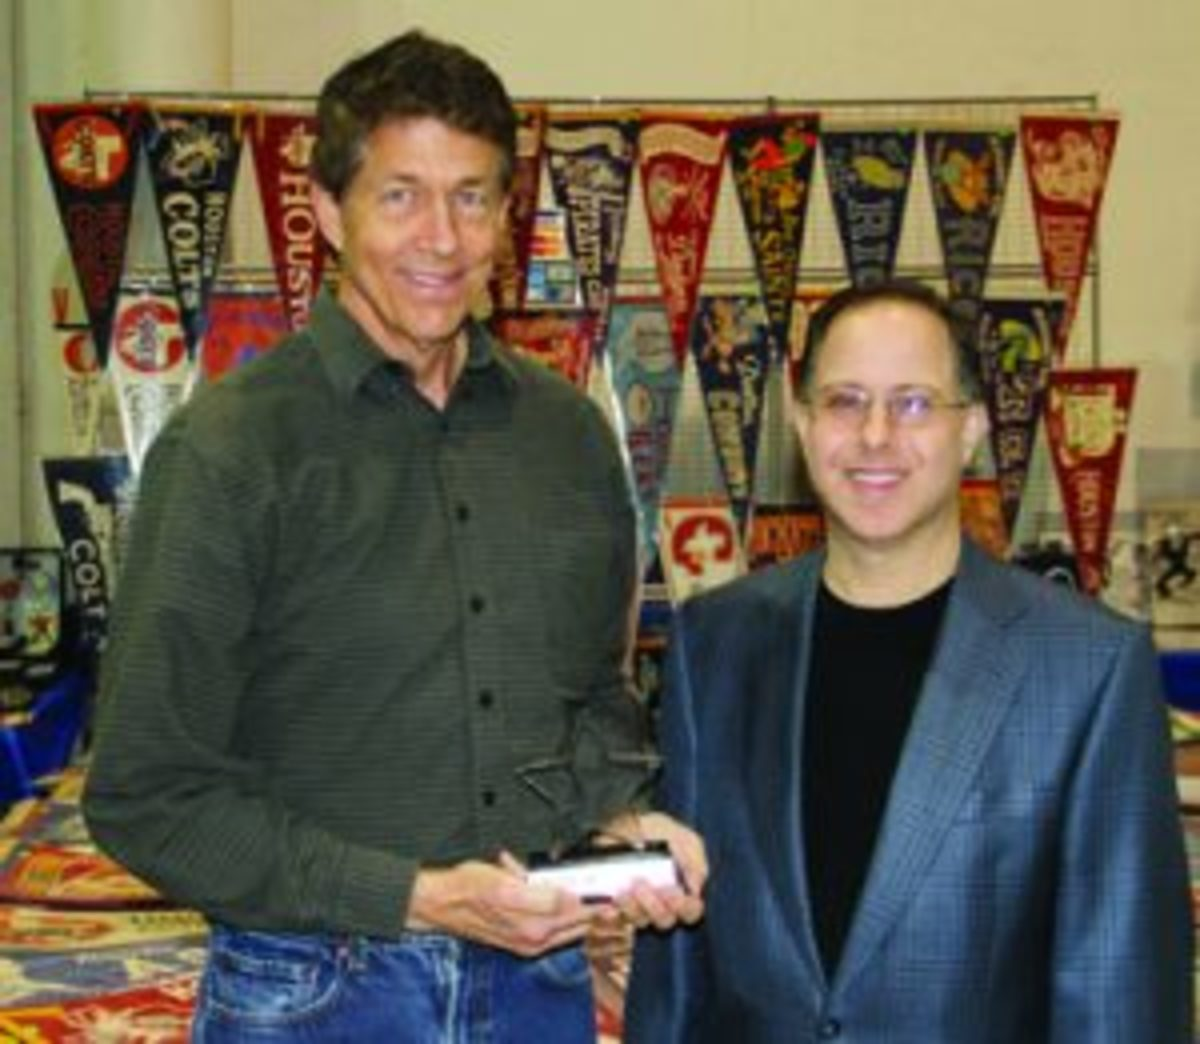 Rick Haskins (left) is presented with the annual Starry Award from Tristar Productions' President Jeff Rosenberg (right) at the 31st annual Tristar Collectors Show in Houston in February.